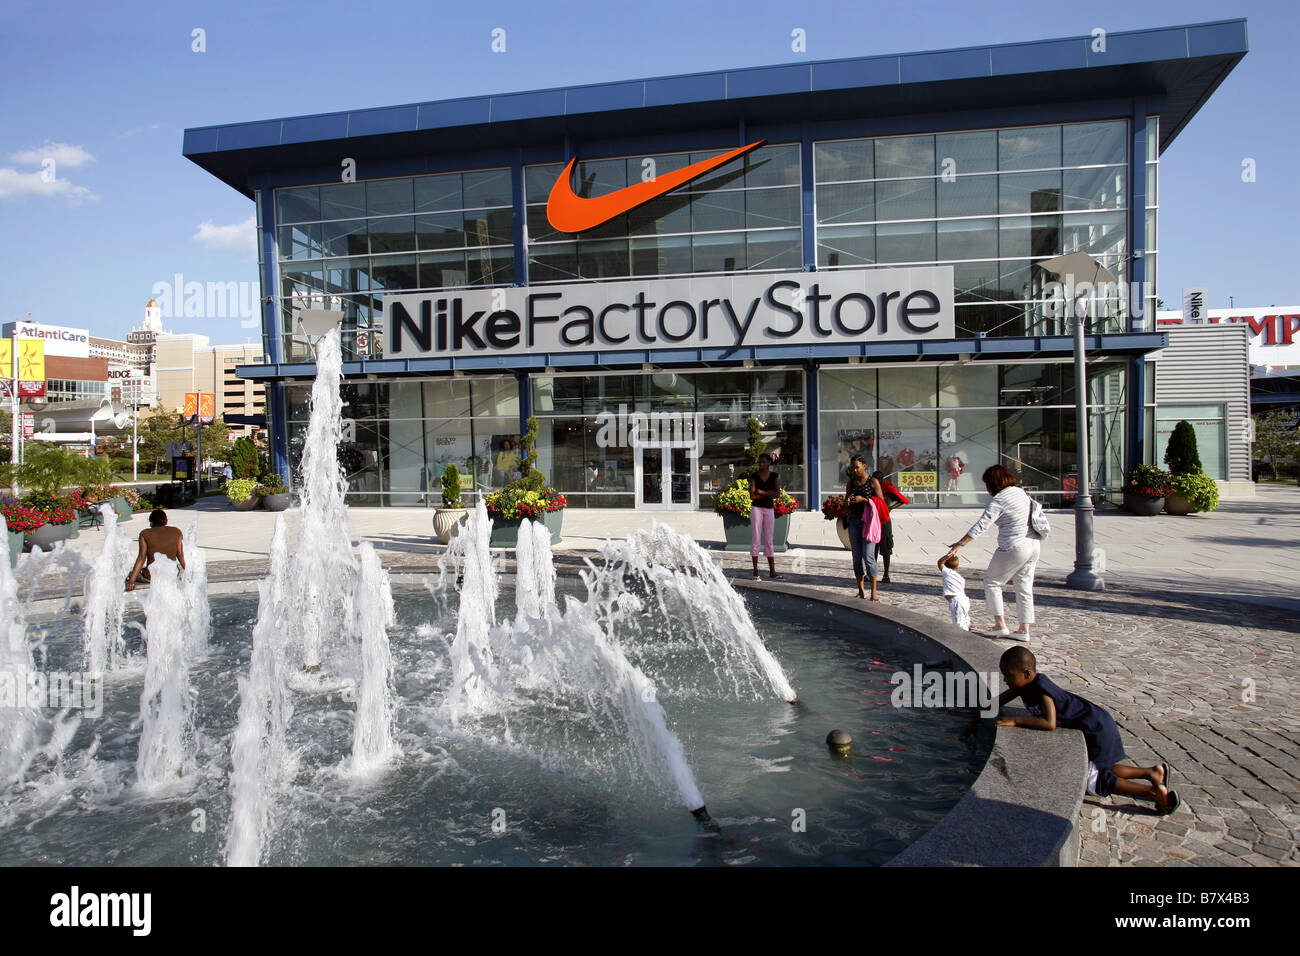 Nike Factory Store, Atlantic City, New Jersey, USA Stock Photo ...